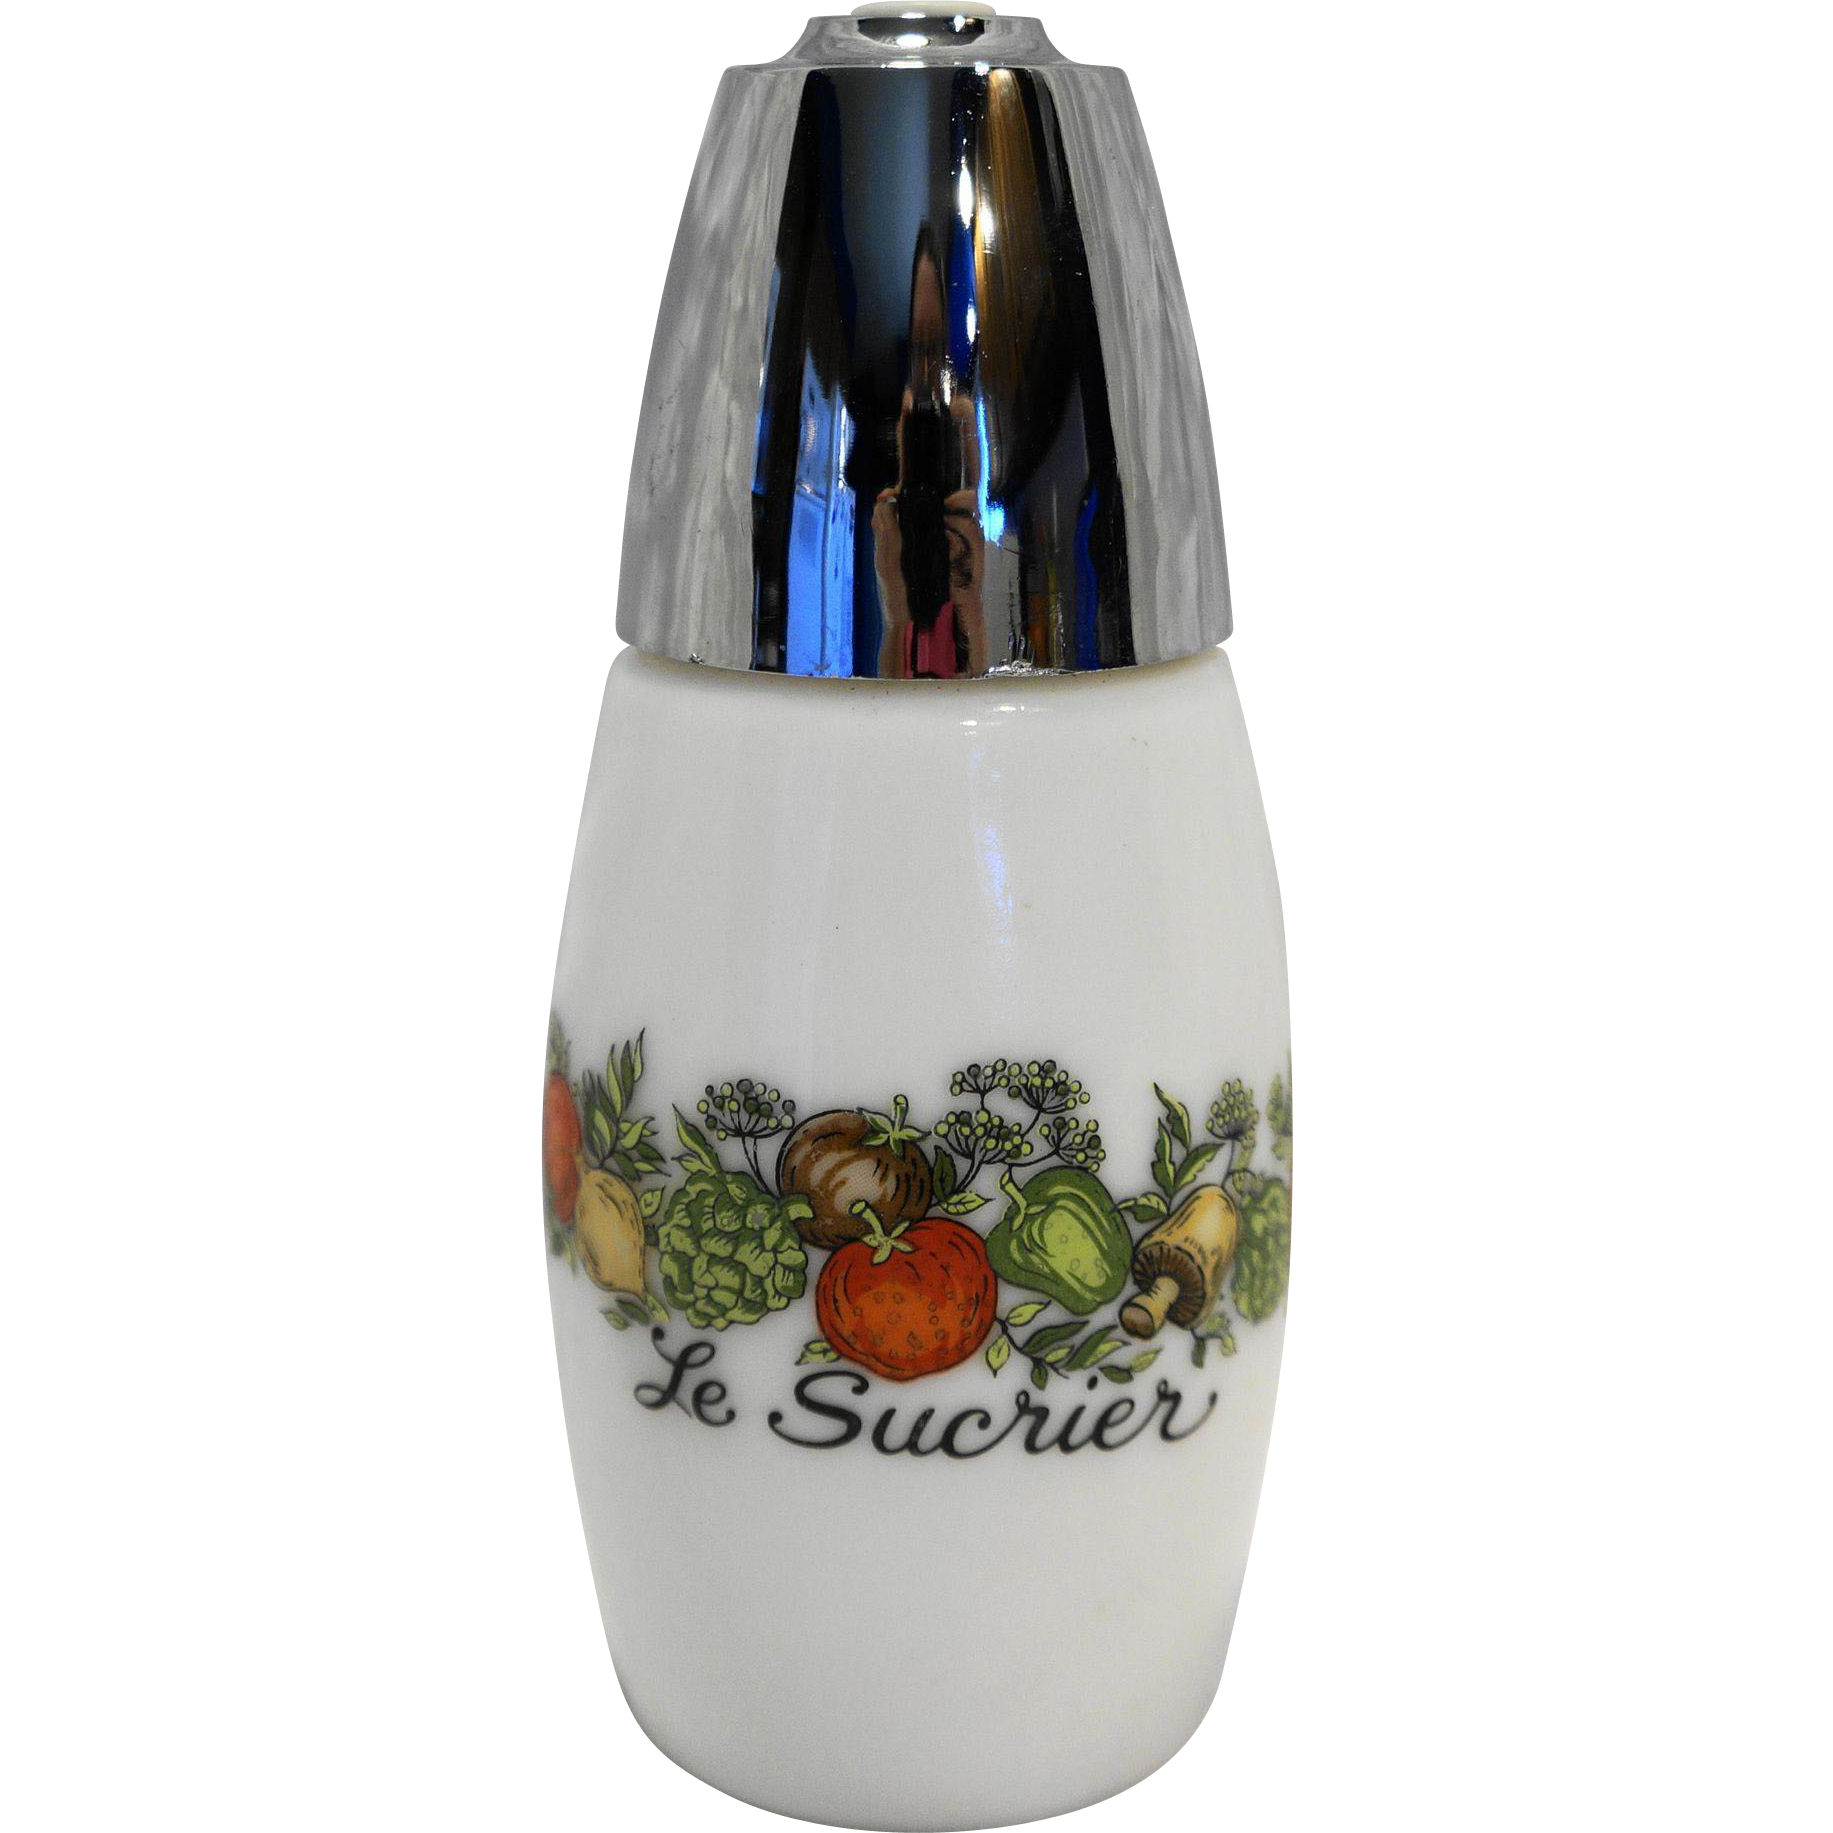 Gemco Spice of Life Sugar Shaker Milk Glass